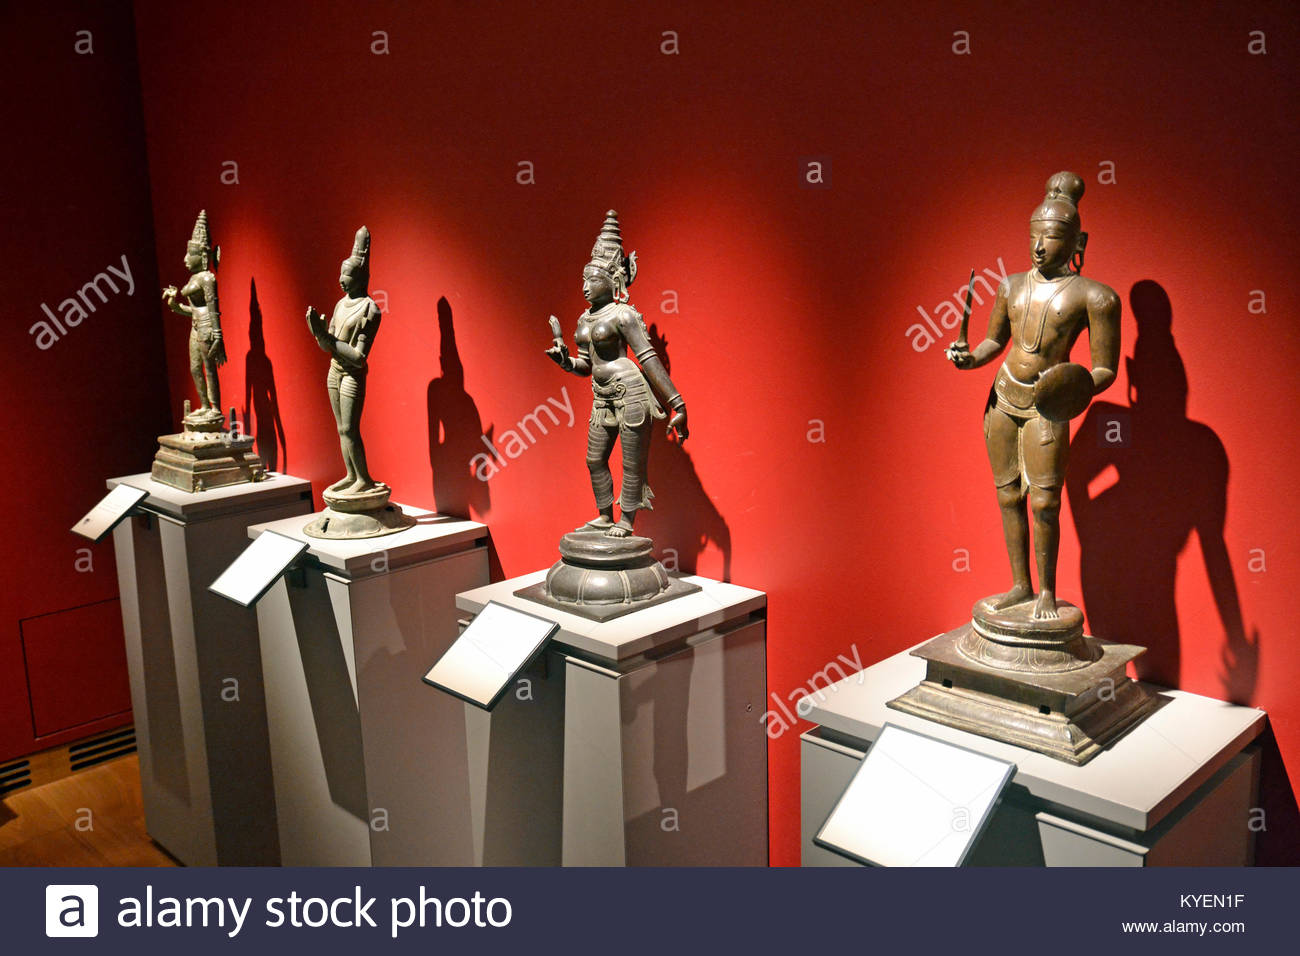 Indian statues and figurines inside the Asian Galleries at the Ashmolean Museum, Oxford - Stock Image